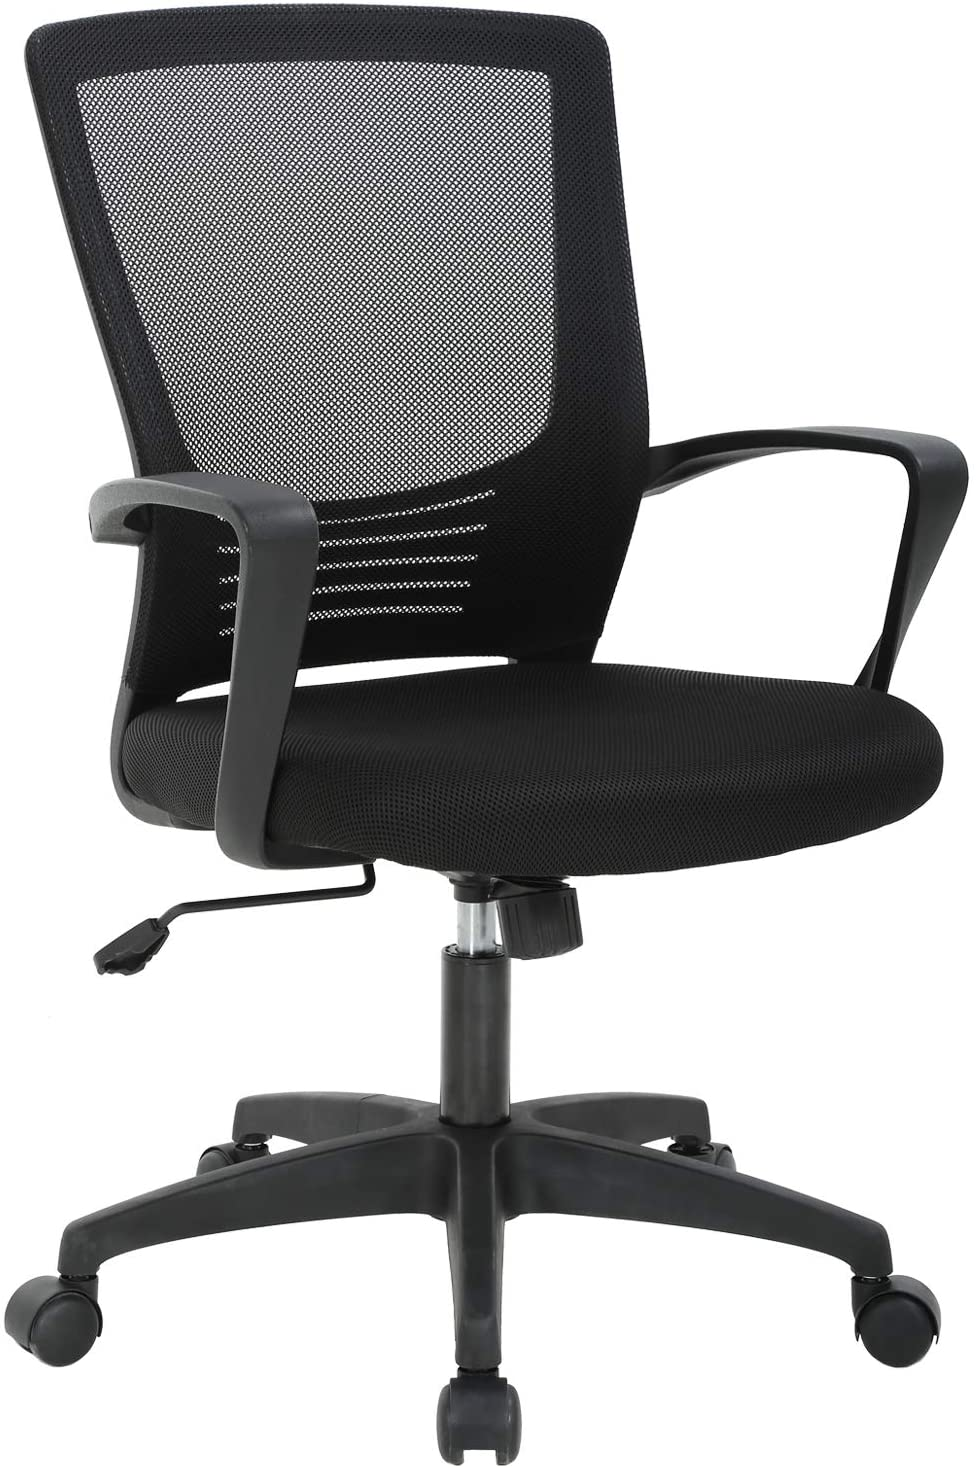 Office Chair Ergonomic Desk Chair Swivel Rolling Computer Chair Executive Lumbar Support Task Mesh Chair Metal Base for Home&Office, Black